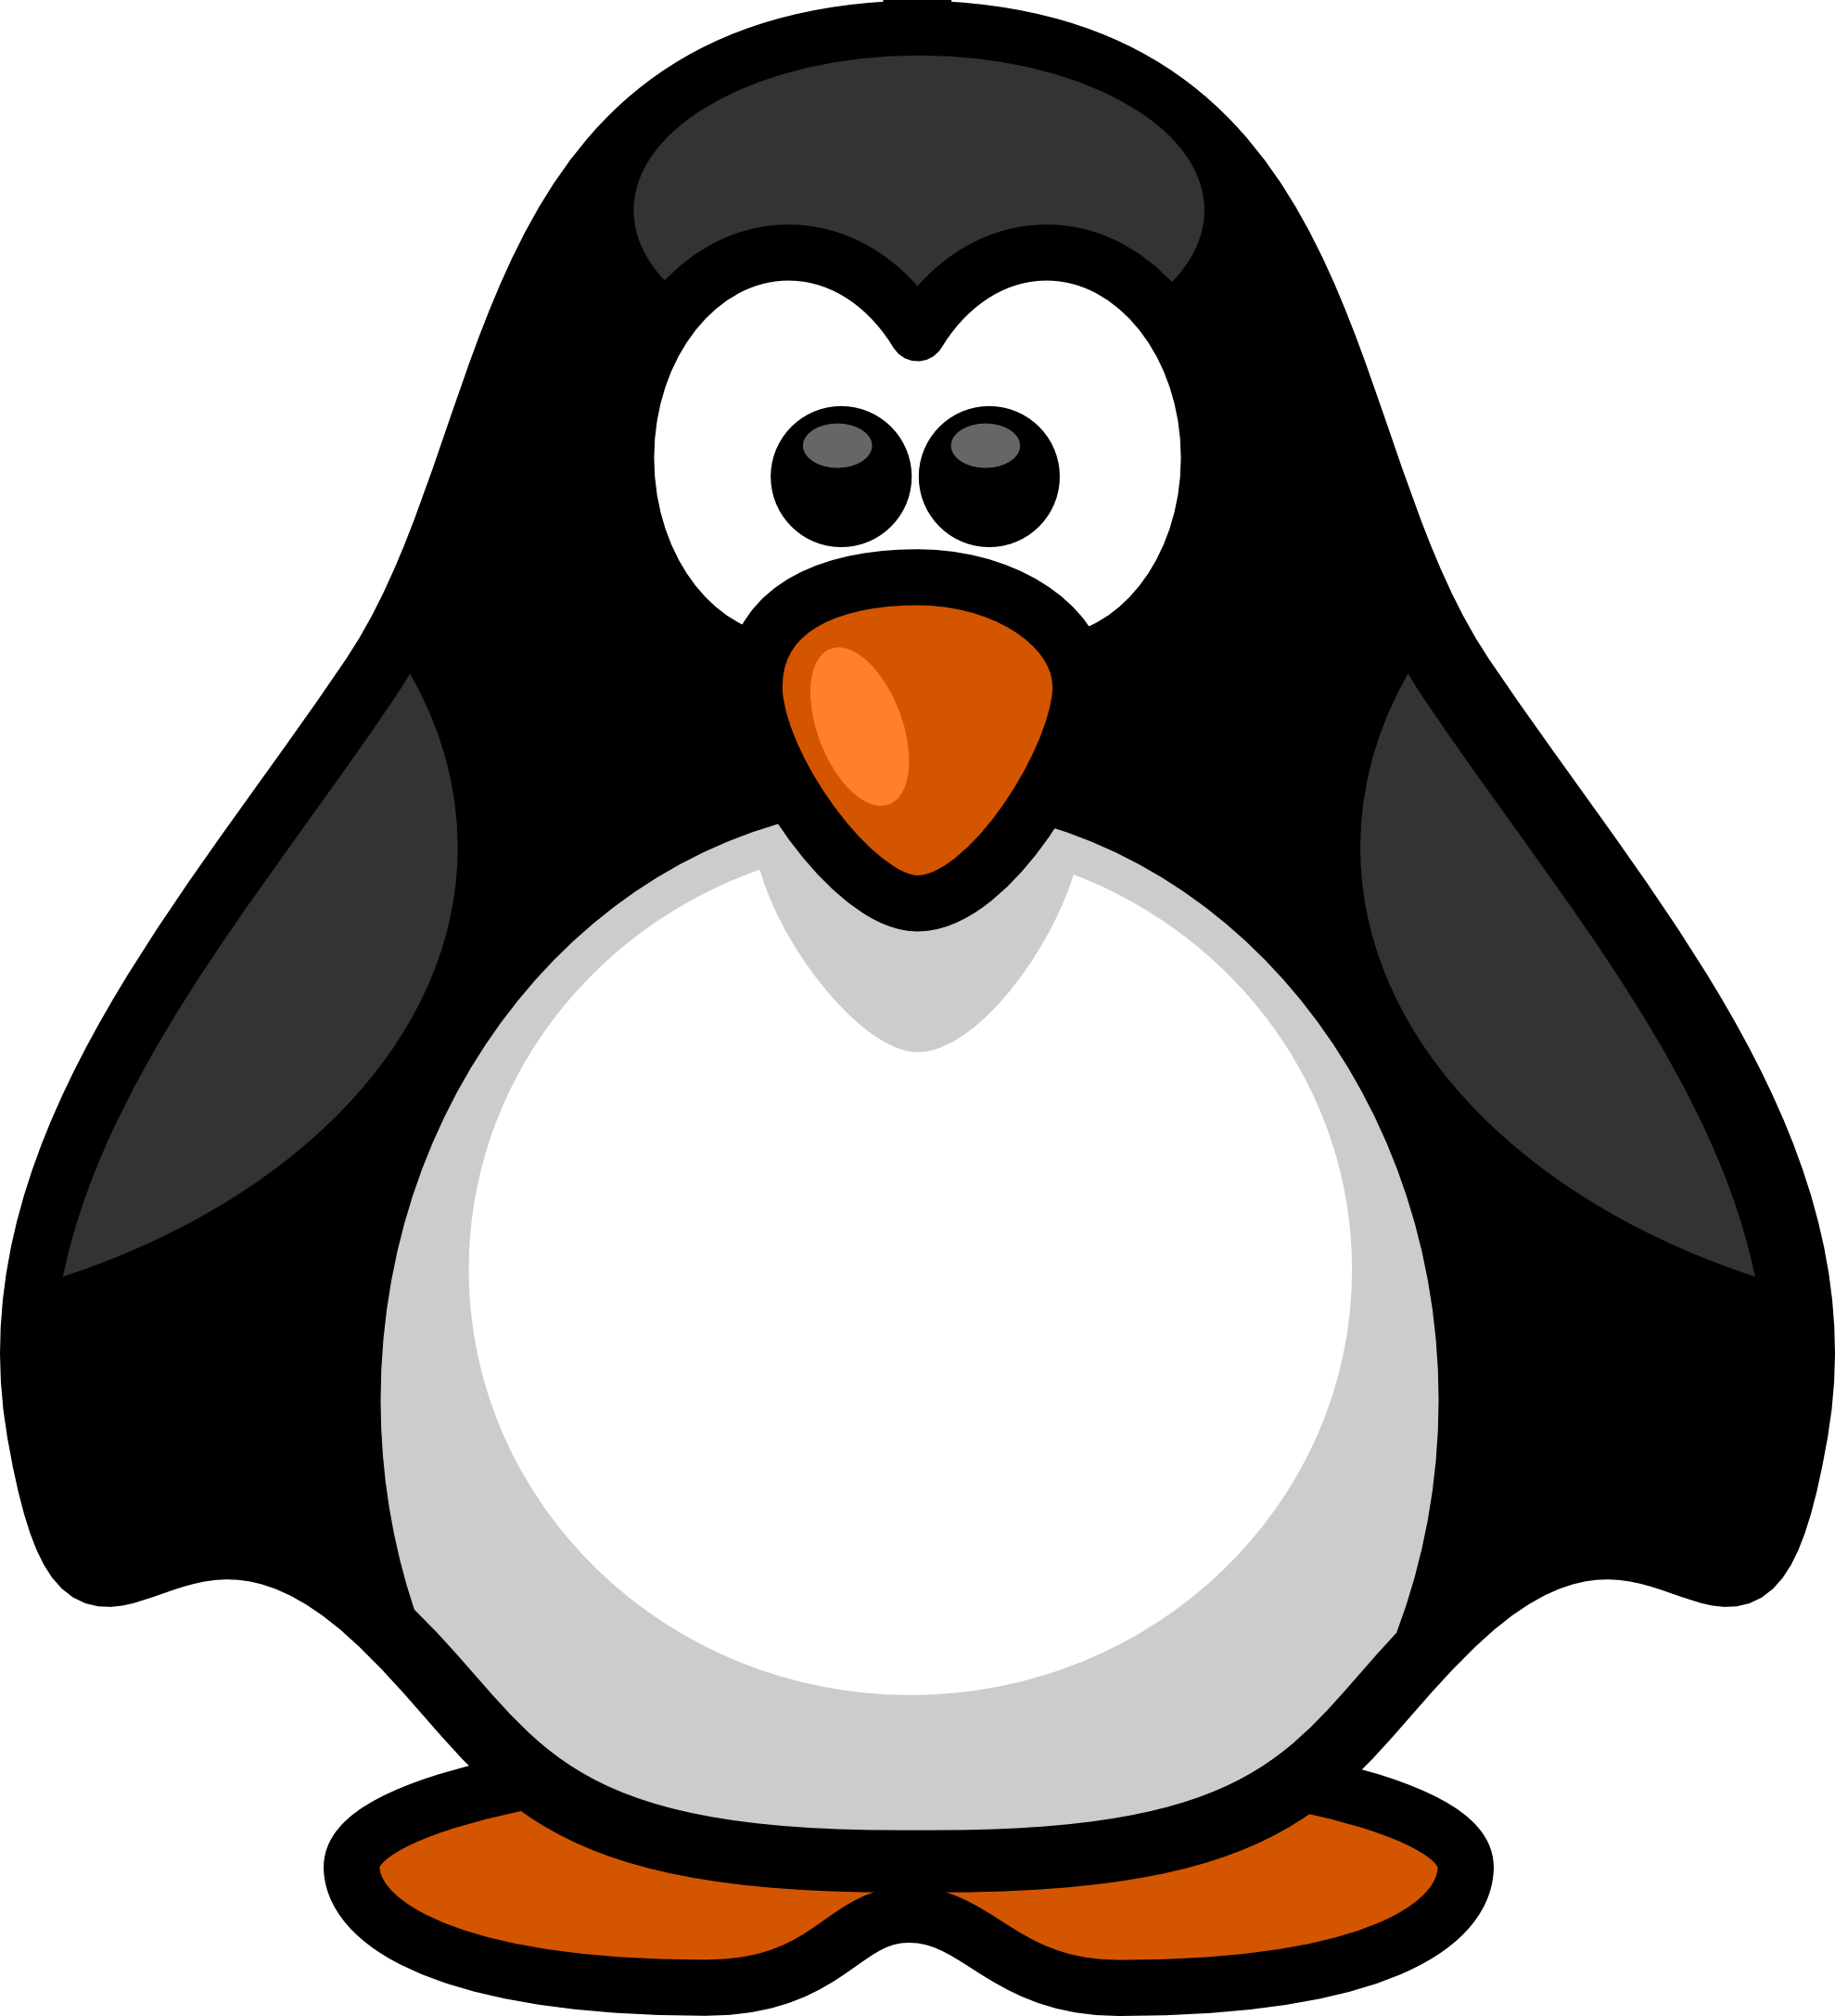 Quail clipart transparent. Black and white panda